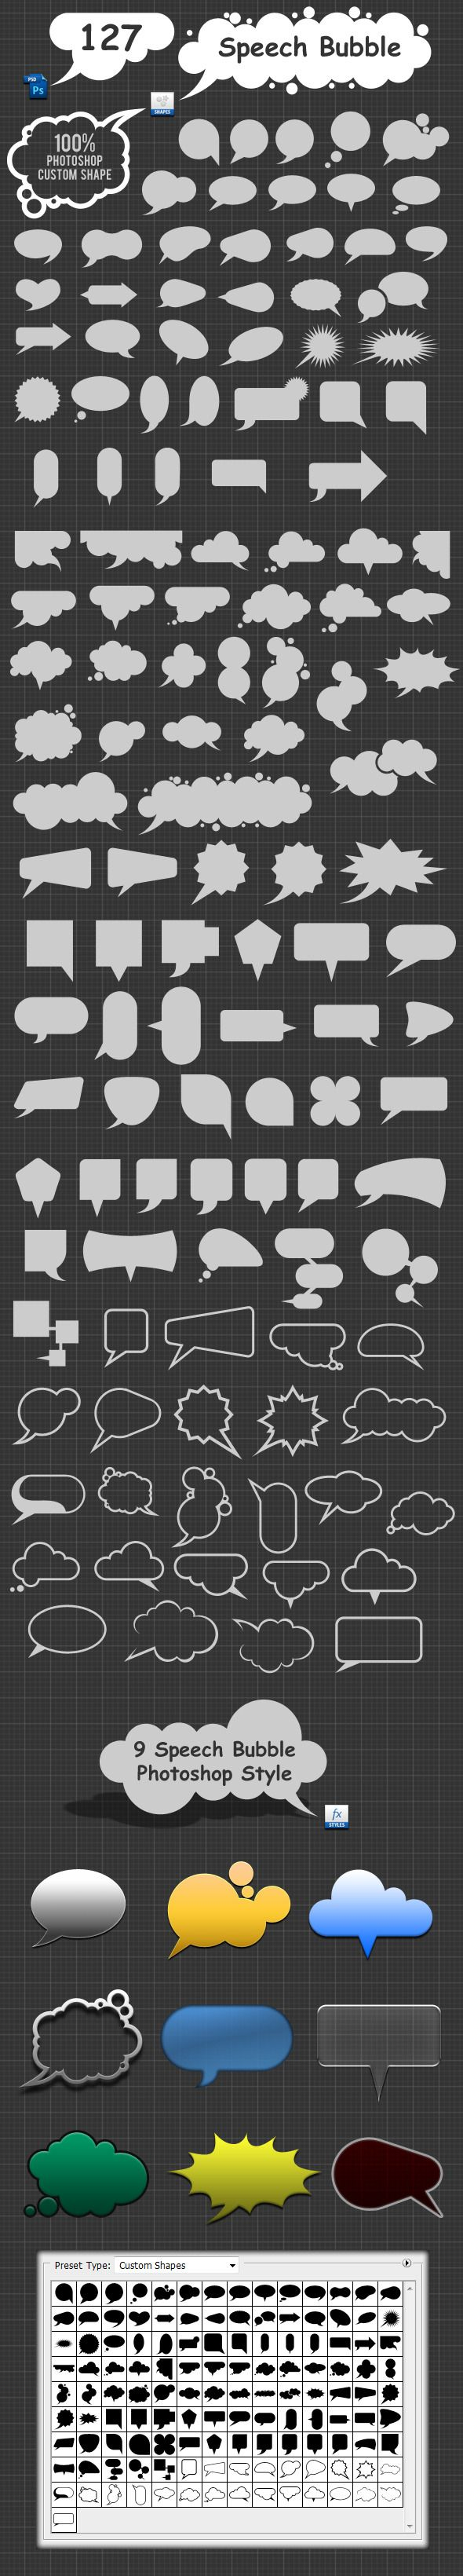 127 Speech Bubble Photoshop Custom Shapes - Objects Shapes